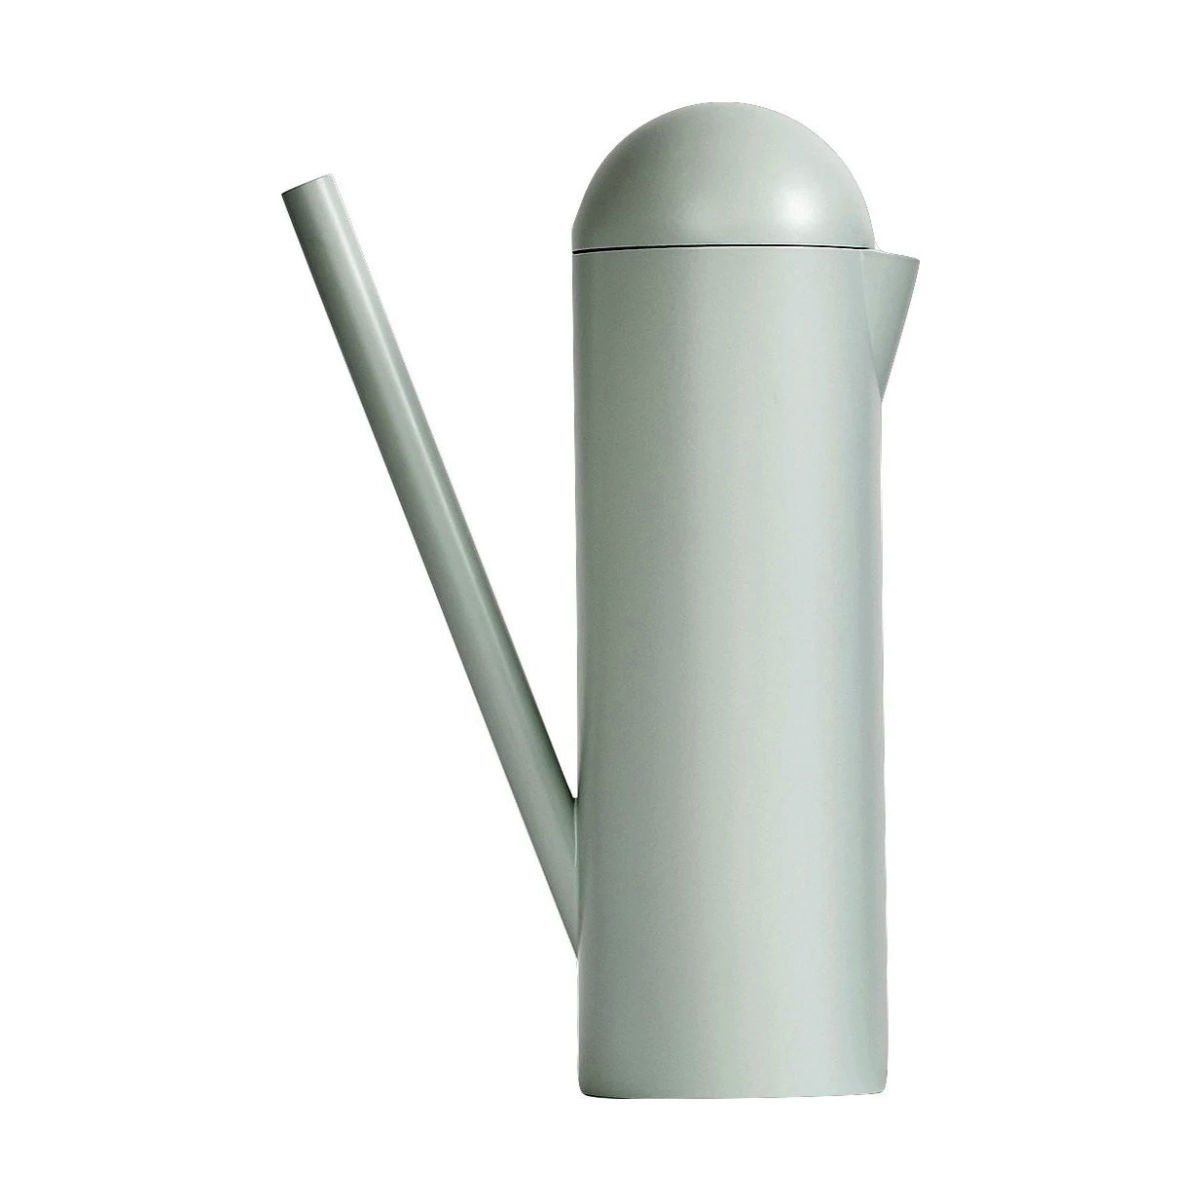 Umbra Deuce pitcher/ watering can